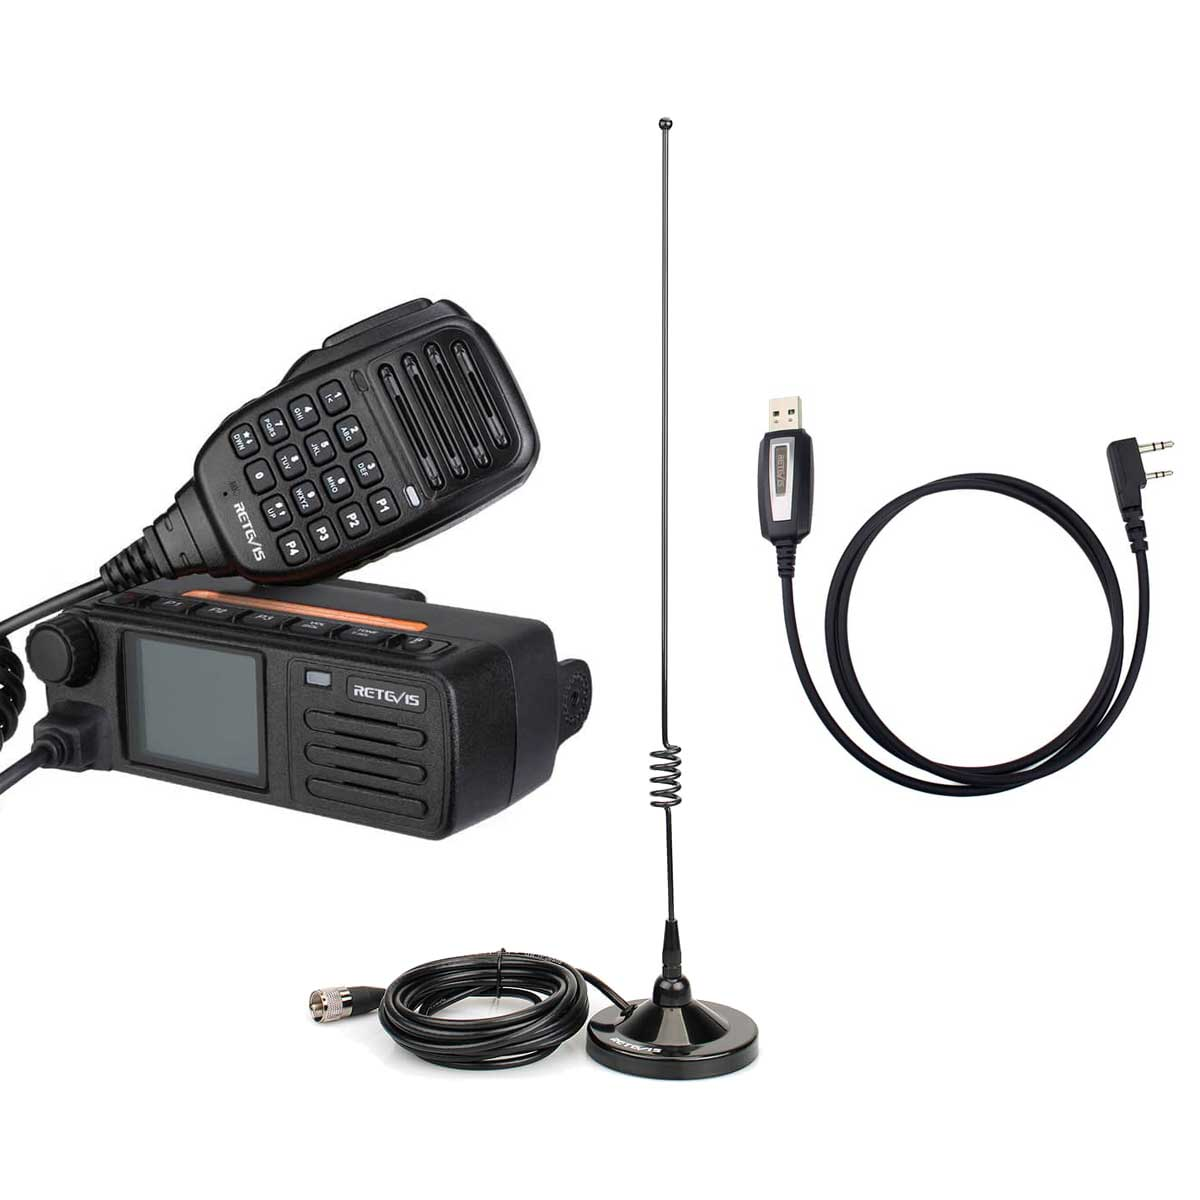 RT73 Mini GPS Dual Band Mobile Radio